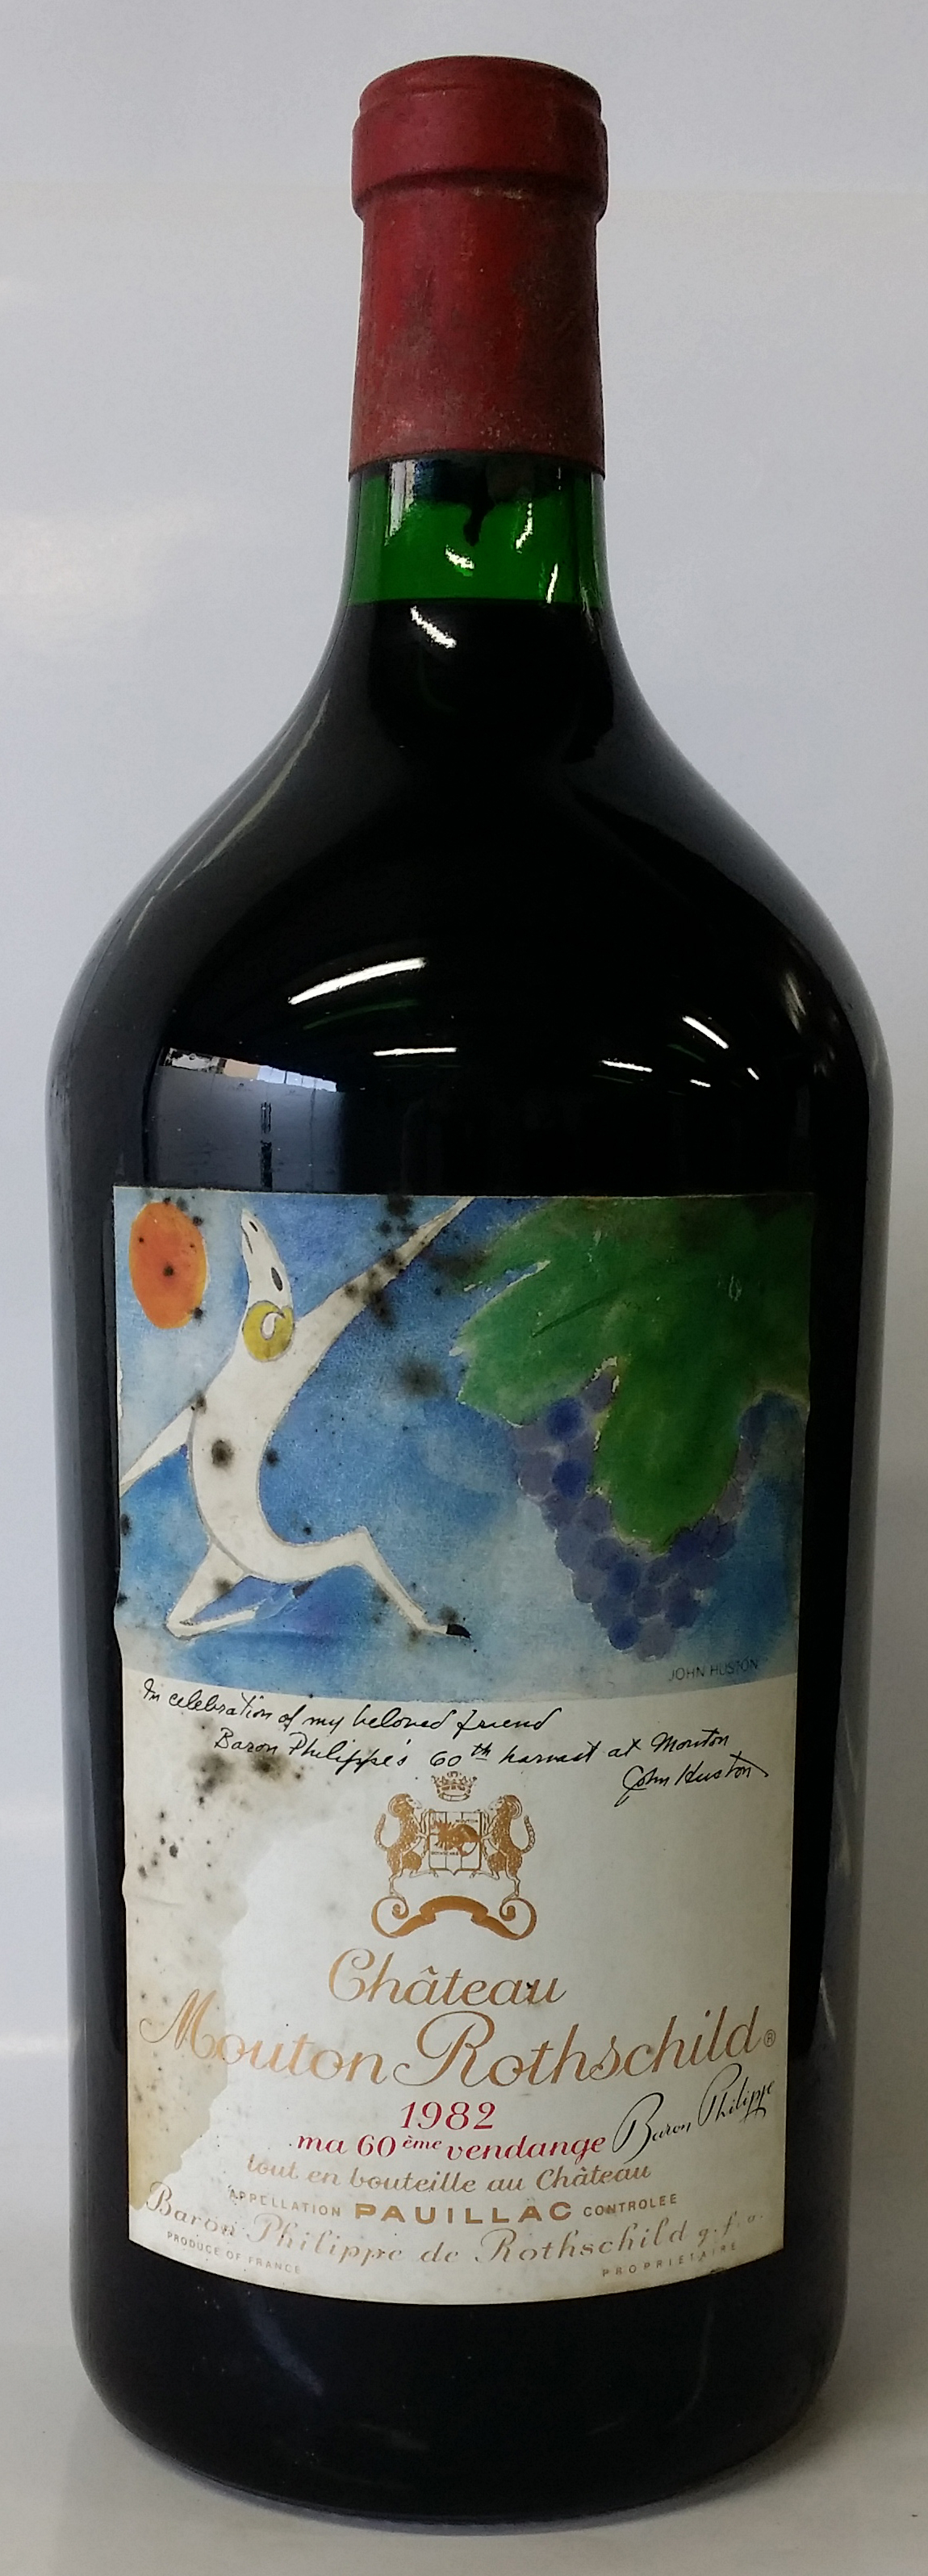 1982 Doble Magnum Chateau Mouton Rothschild